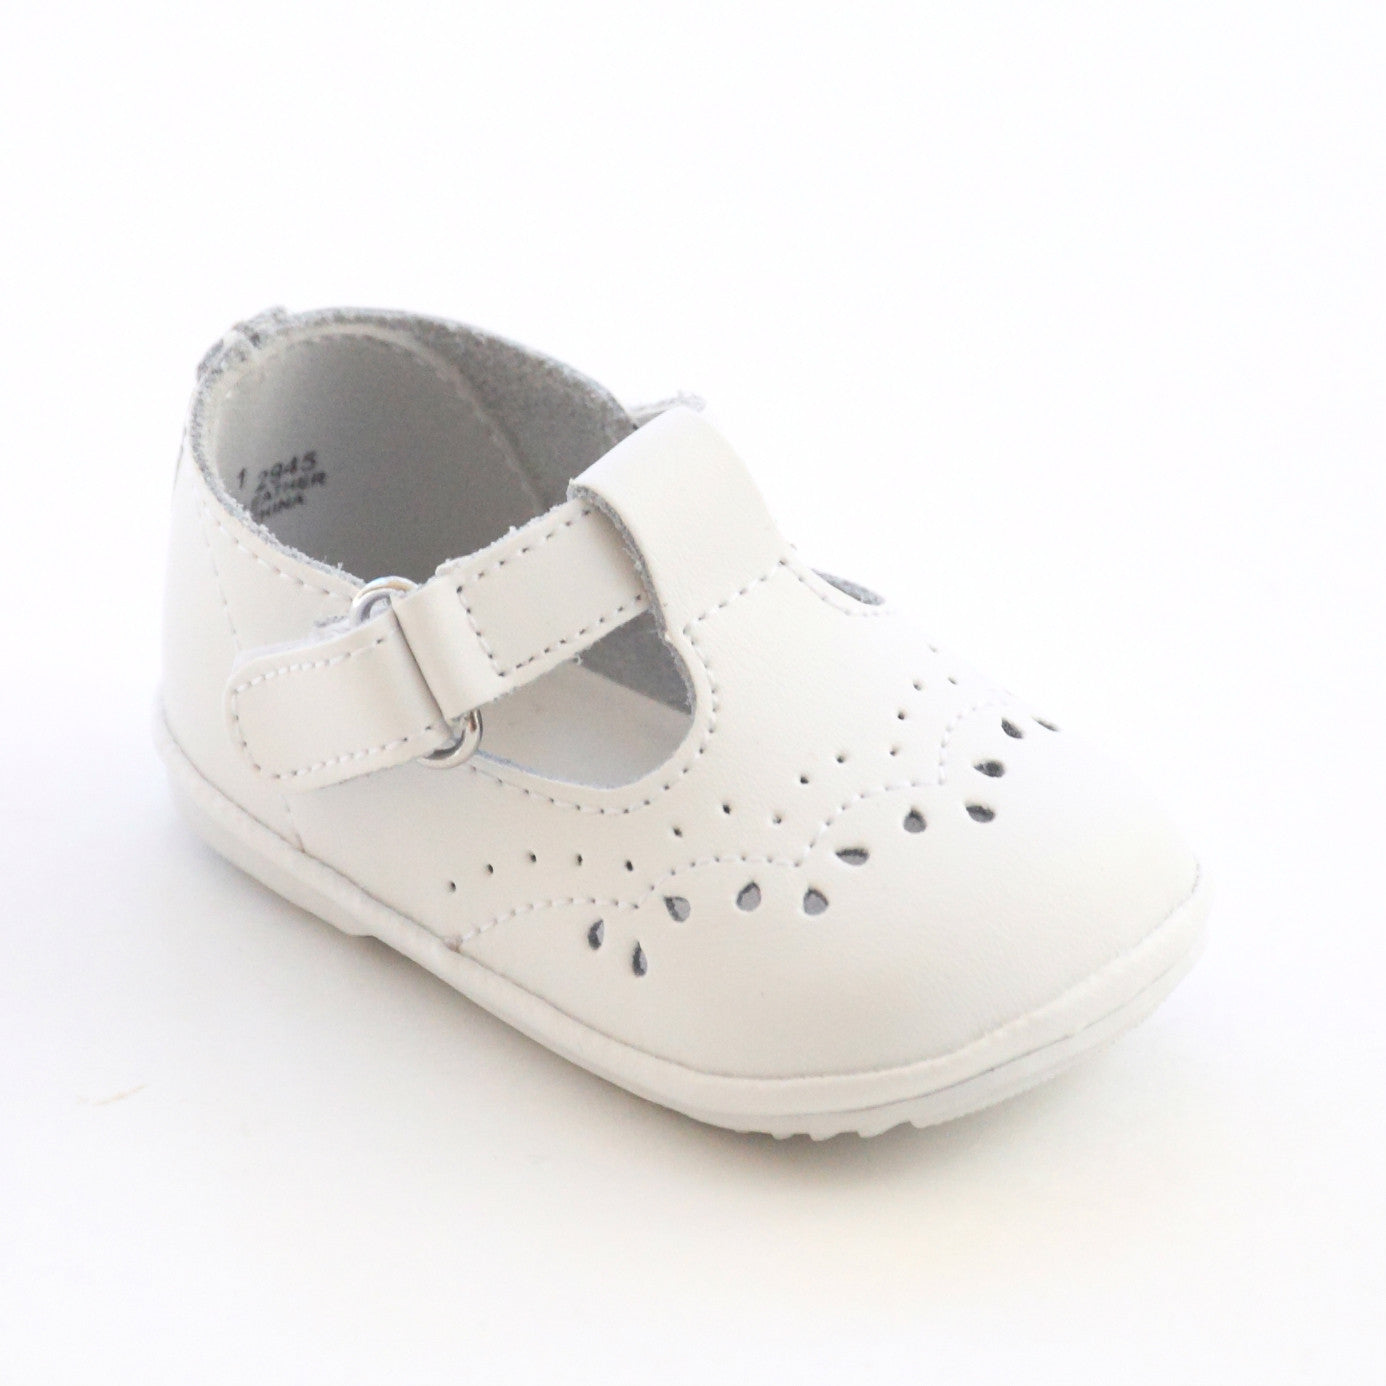 Angel Shoes Infant Girls 2945 White Leather T Strap Mary Janes